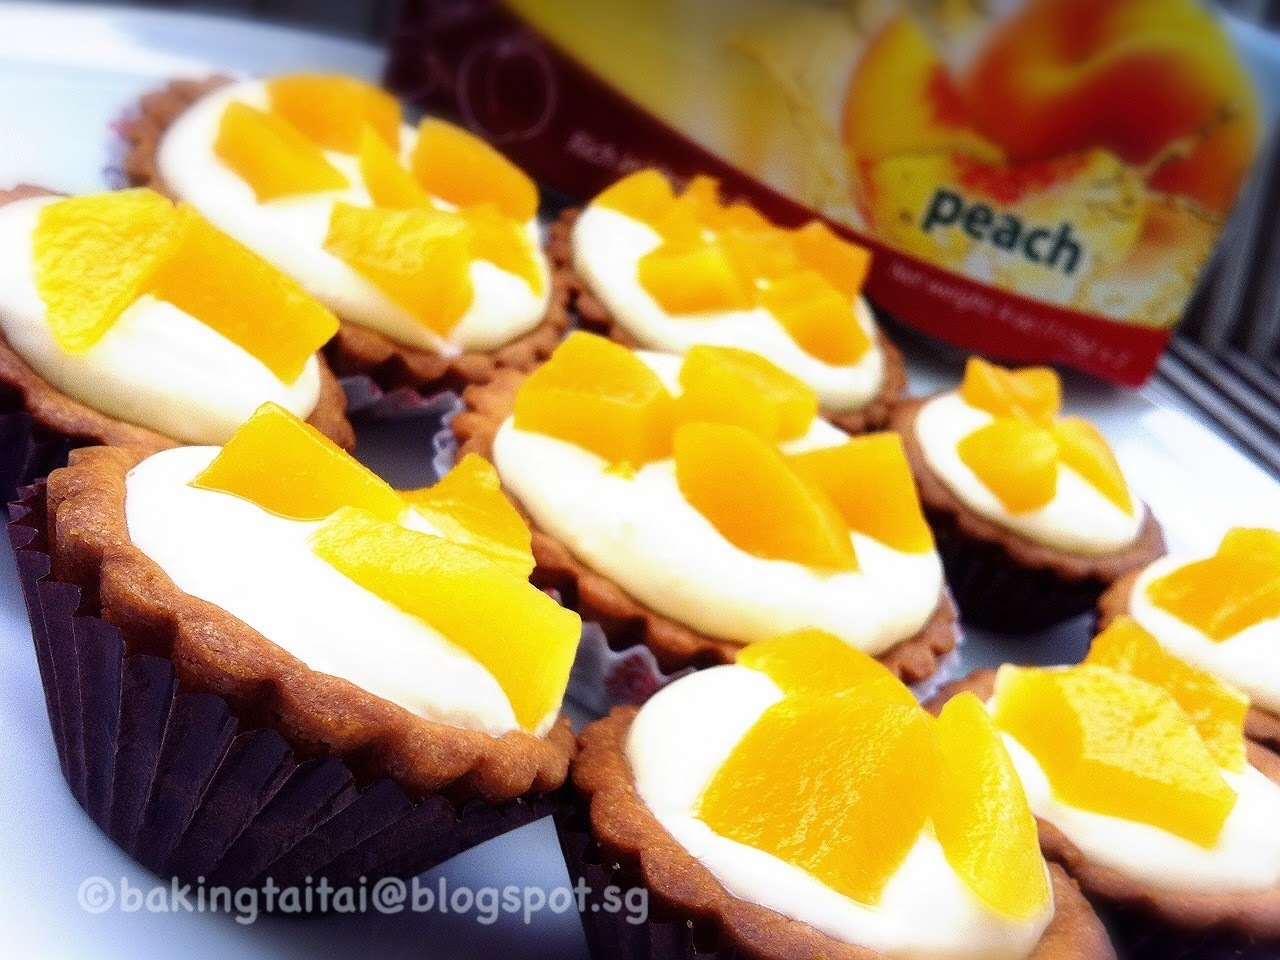 Peach Cheese Tart + SunMoon Goodie Bag Giveaway #2    蜜桃芝士挞 + SunMoon 礼包赠品#2